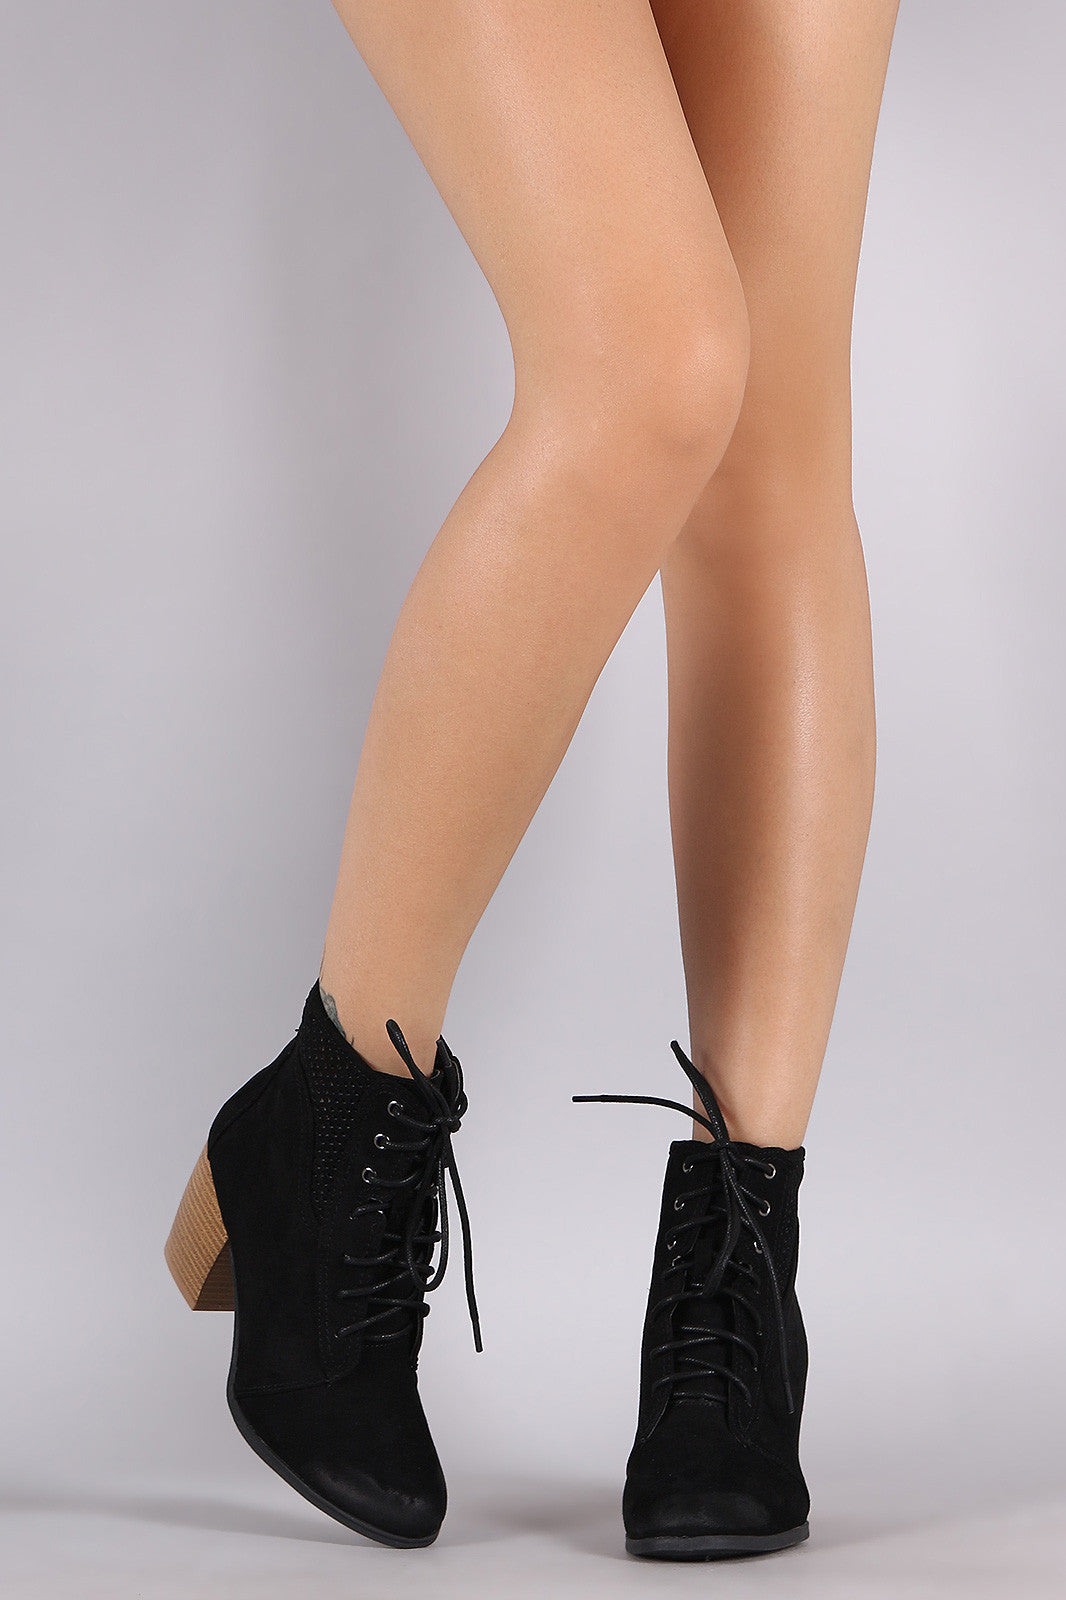 Qupid Spring Perforated Combat Booties - Thick 'N' Curvy Shop - 3